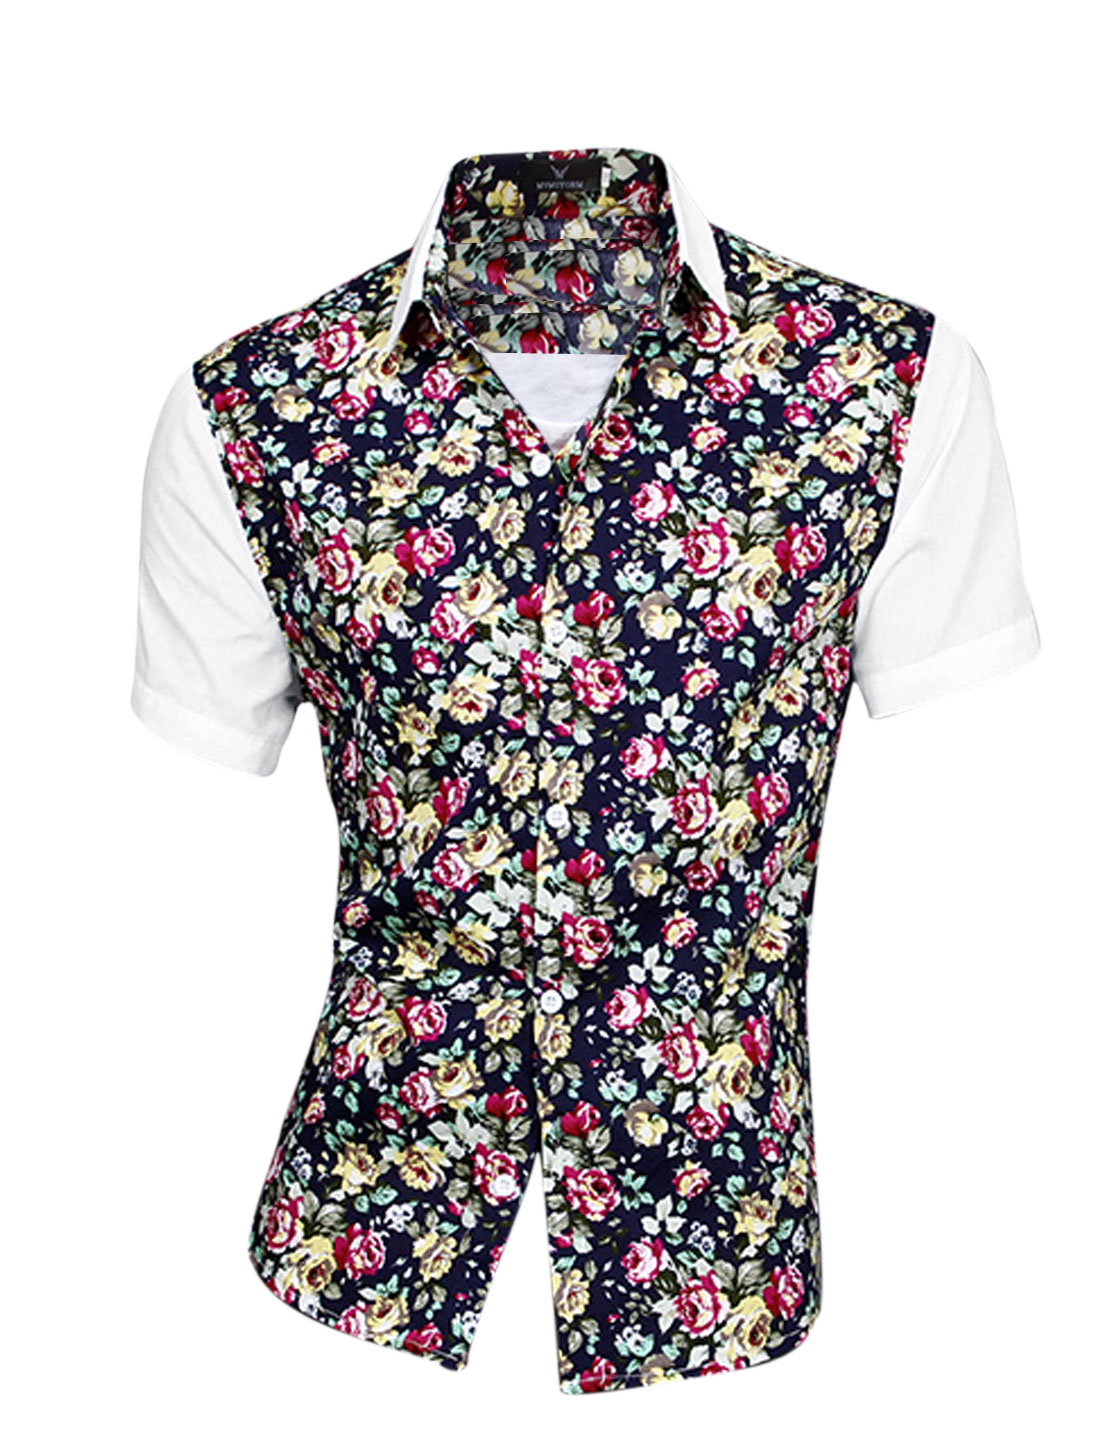 Men Panel Design Floral Prints Single Breasted Shirt White M